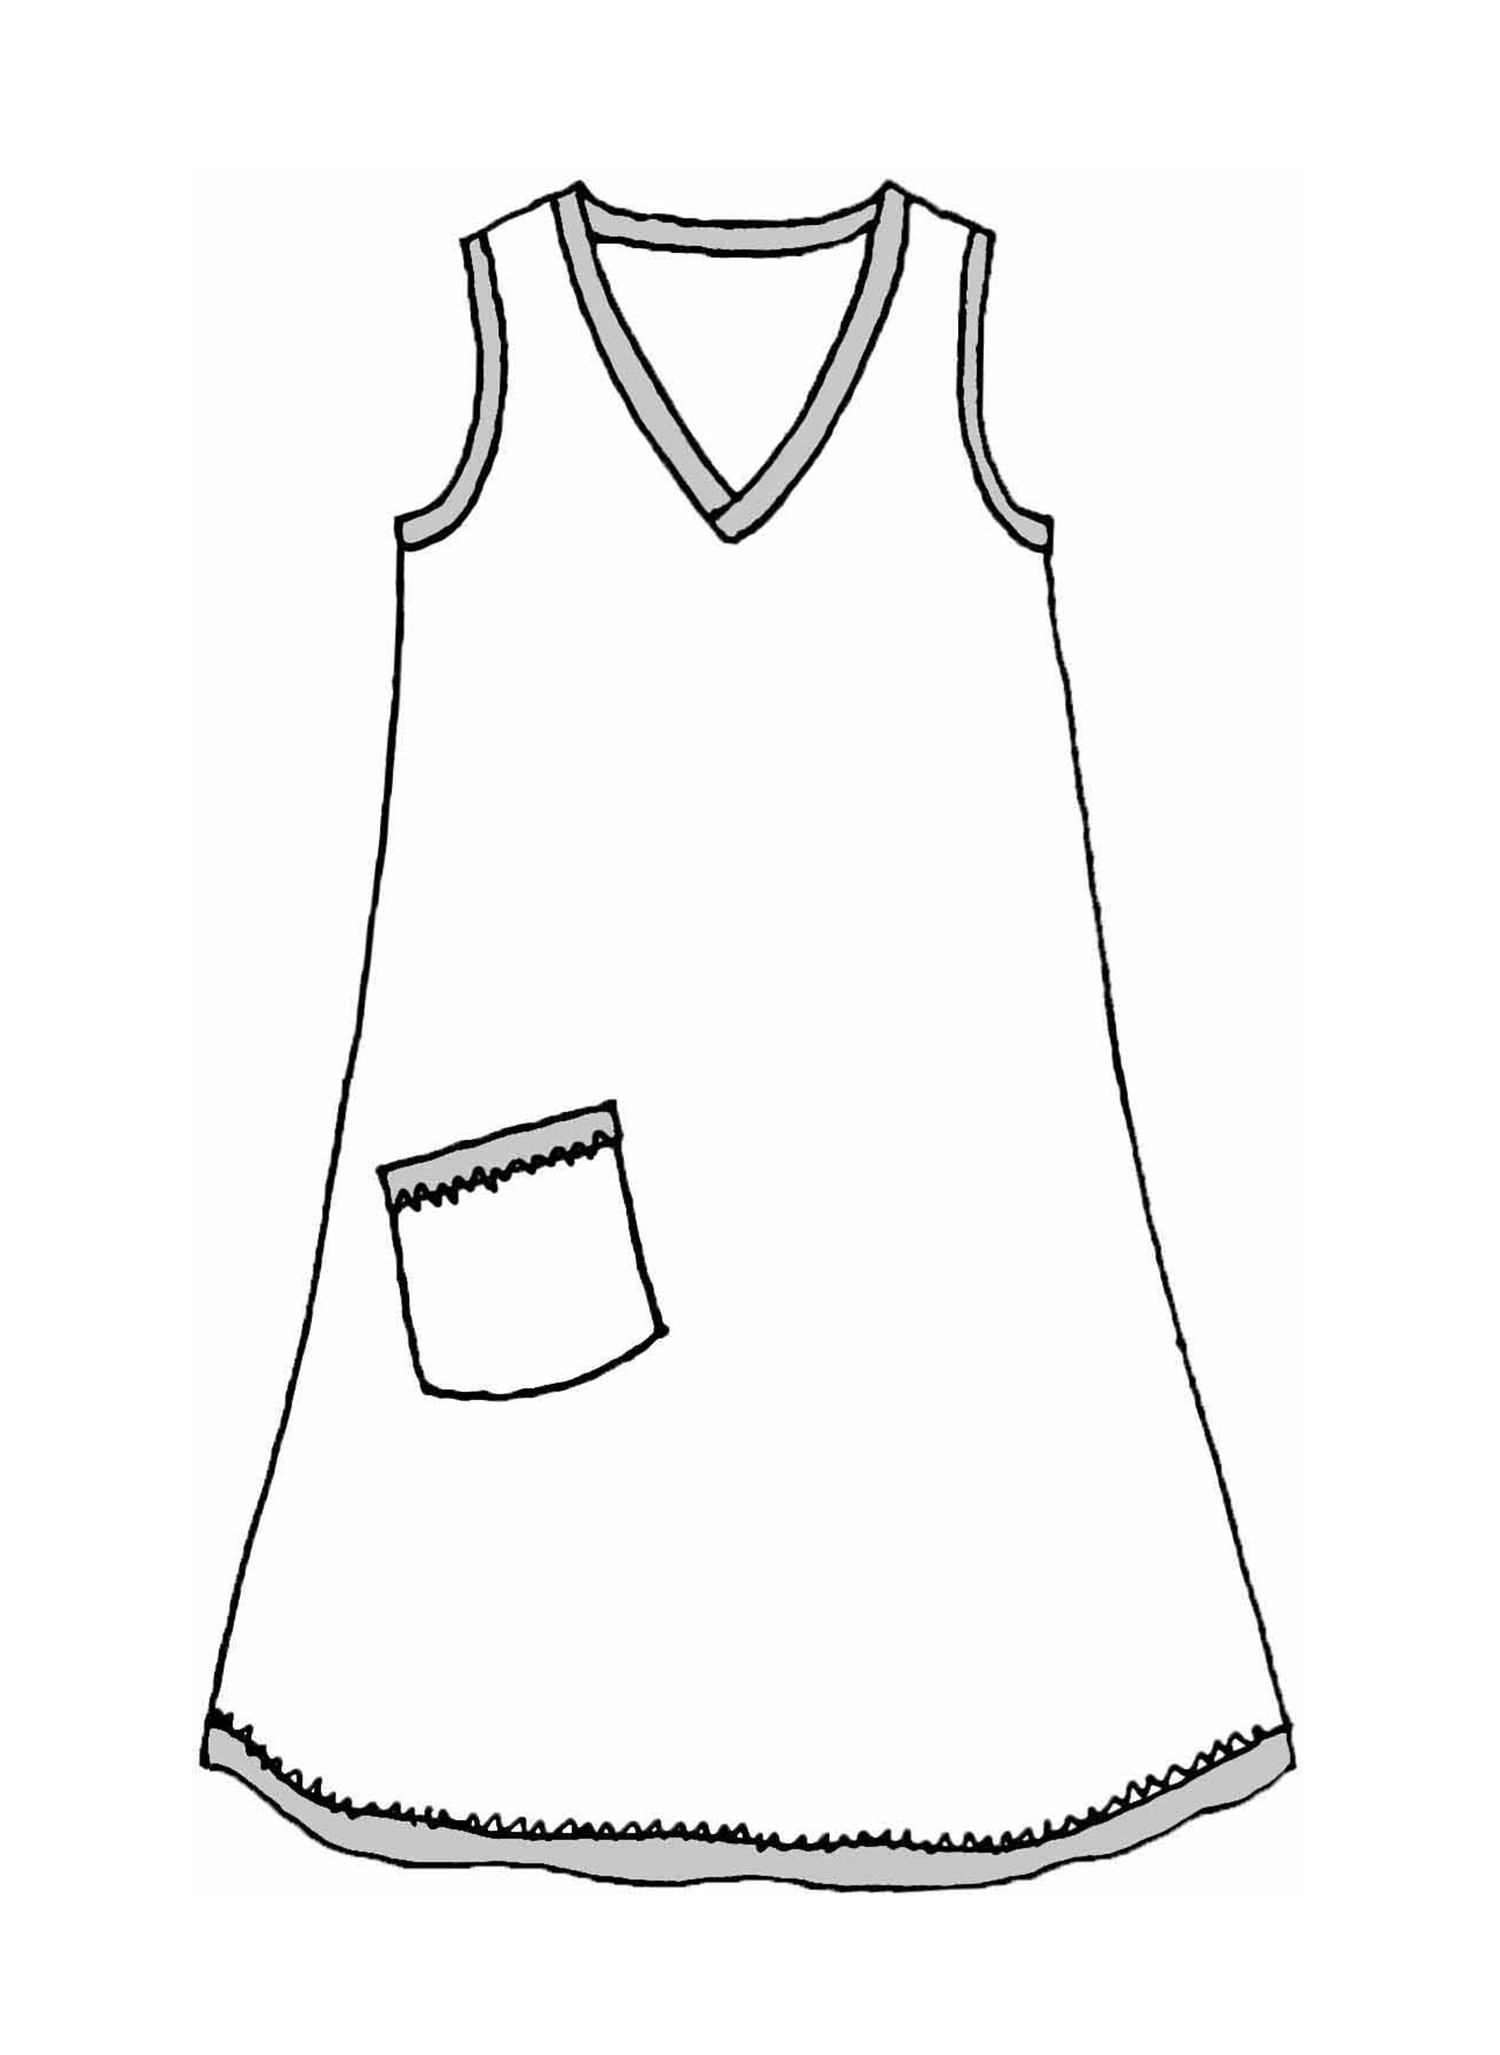 Live In Dress sketch image